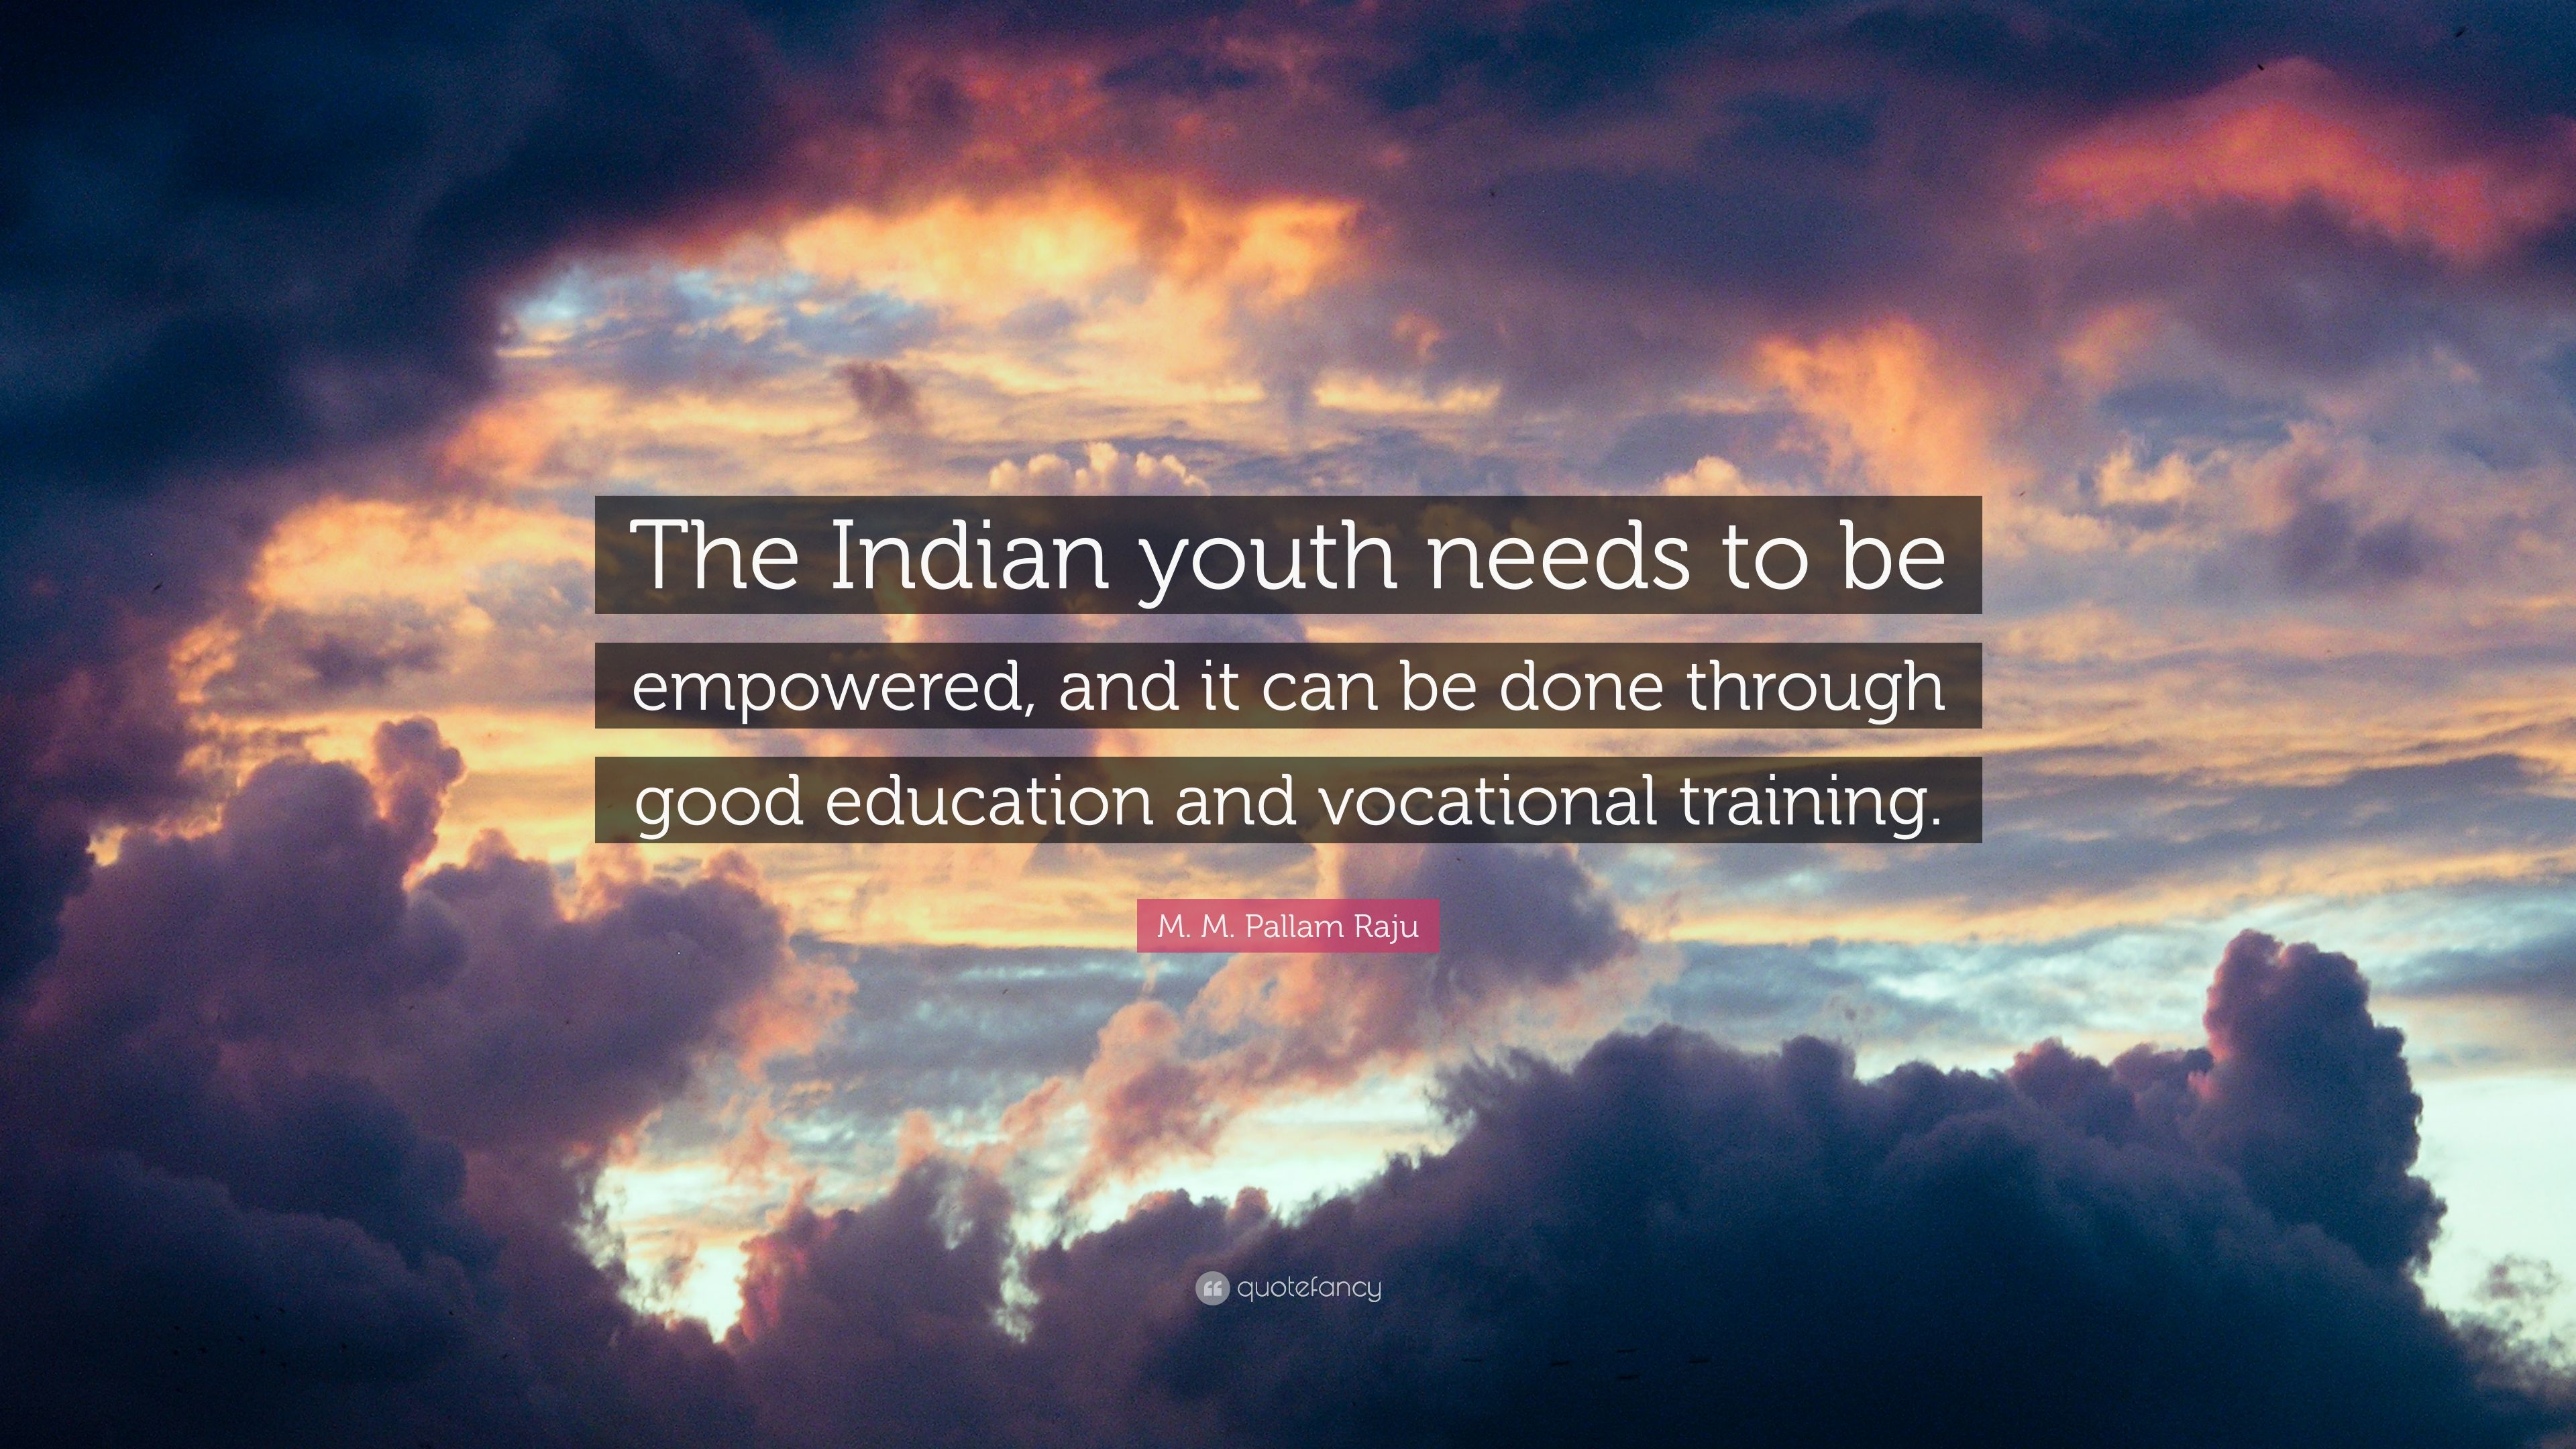 Best Wallpaper Logo Raju - 5455929-M-M-Pallam-Raju-Quote-The-Indian-youth-needs-to-be-empowered-and  You Should Have_47613.jpg